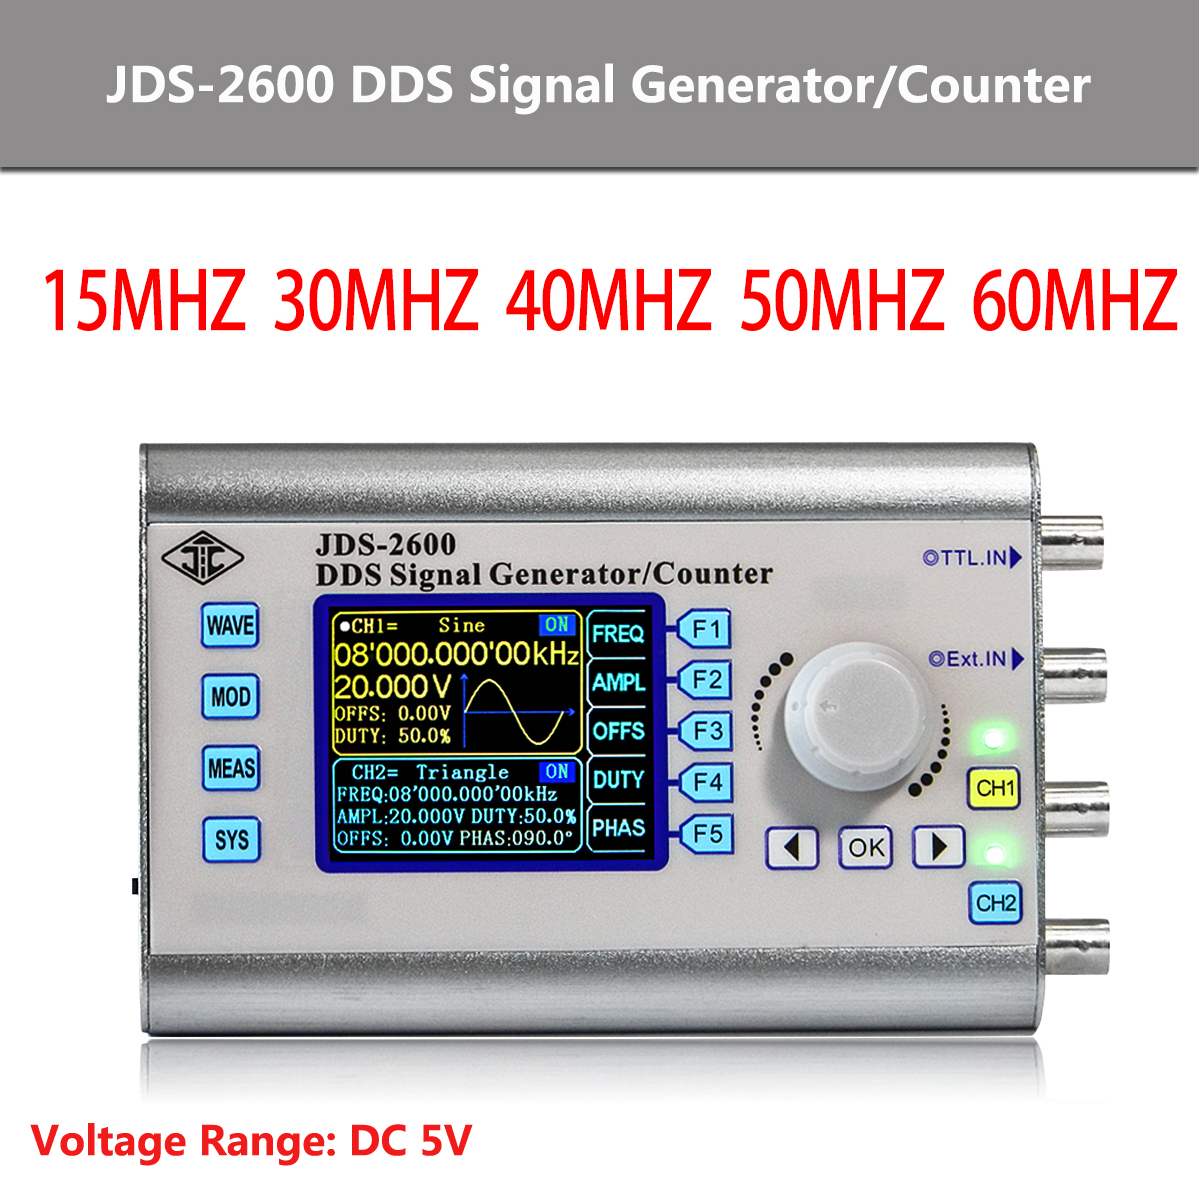 Jds 2600 2 Channel Dds Signal Generator Counter Arbitrary Wave More Triangle Generators Hobby Circuits Function 266msa S